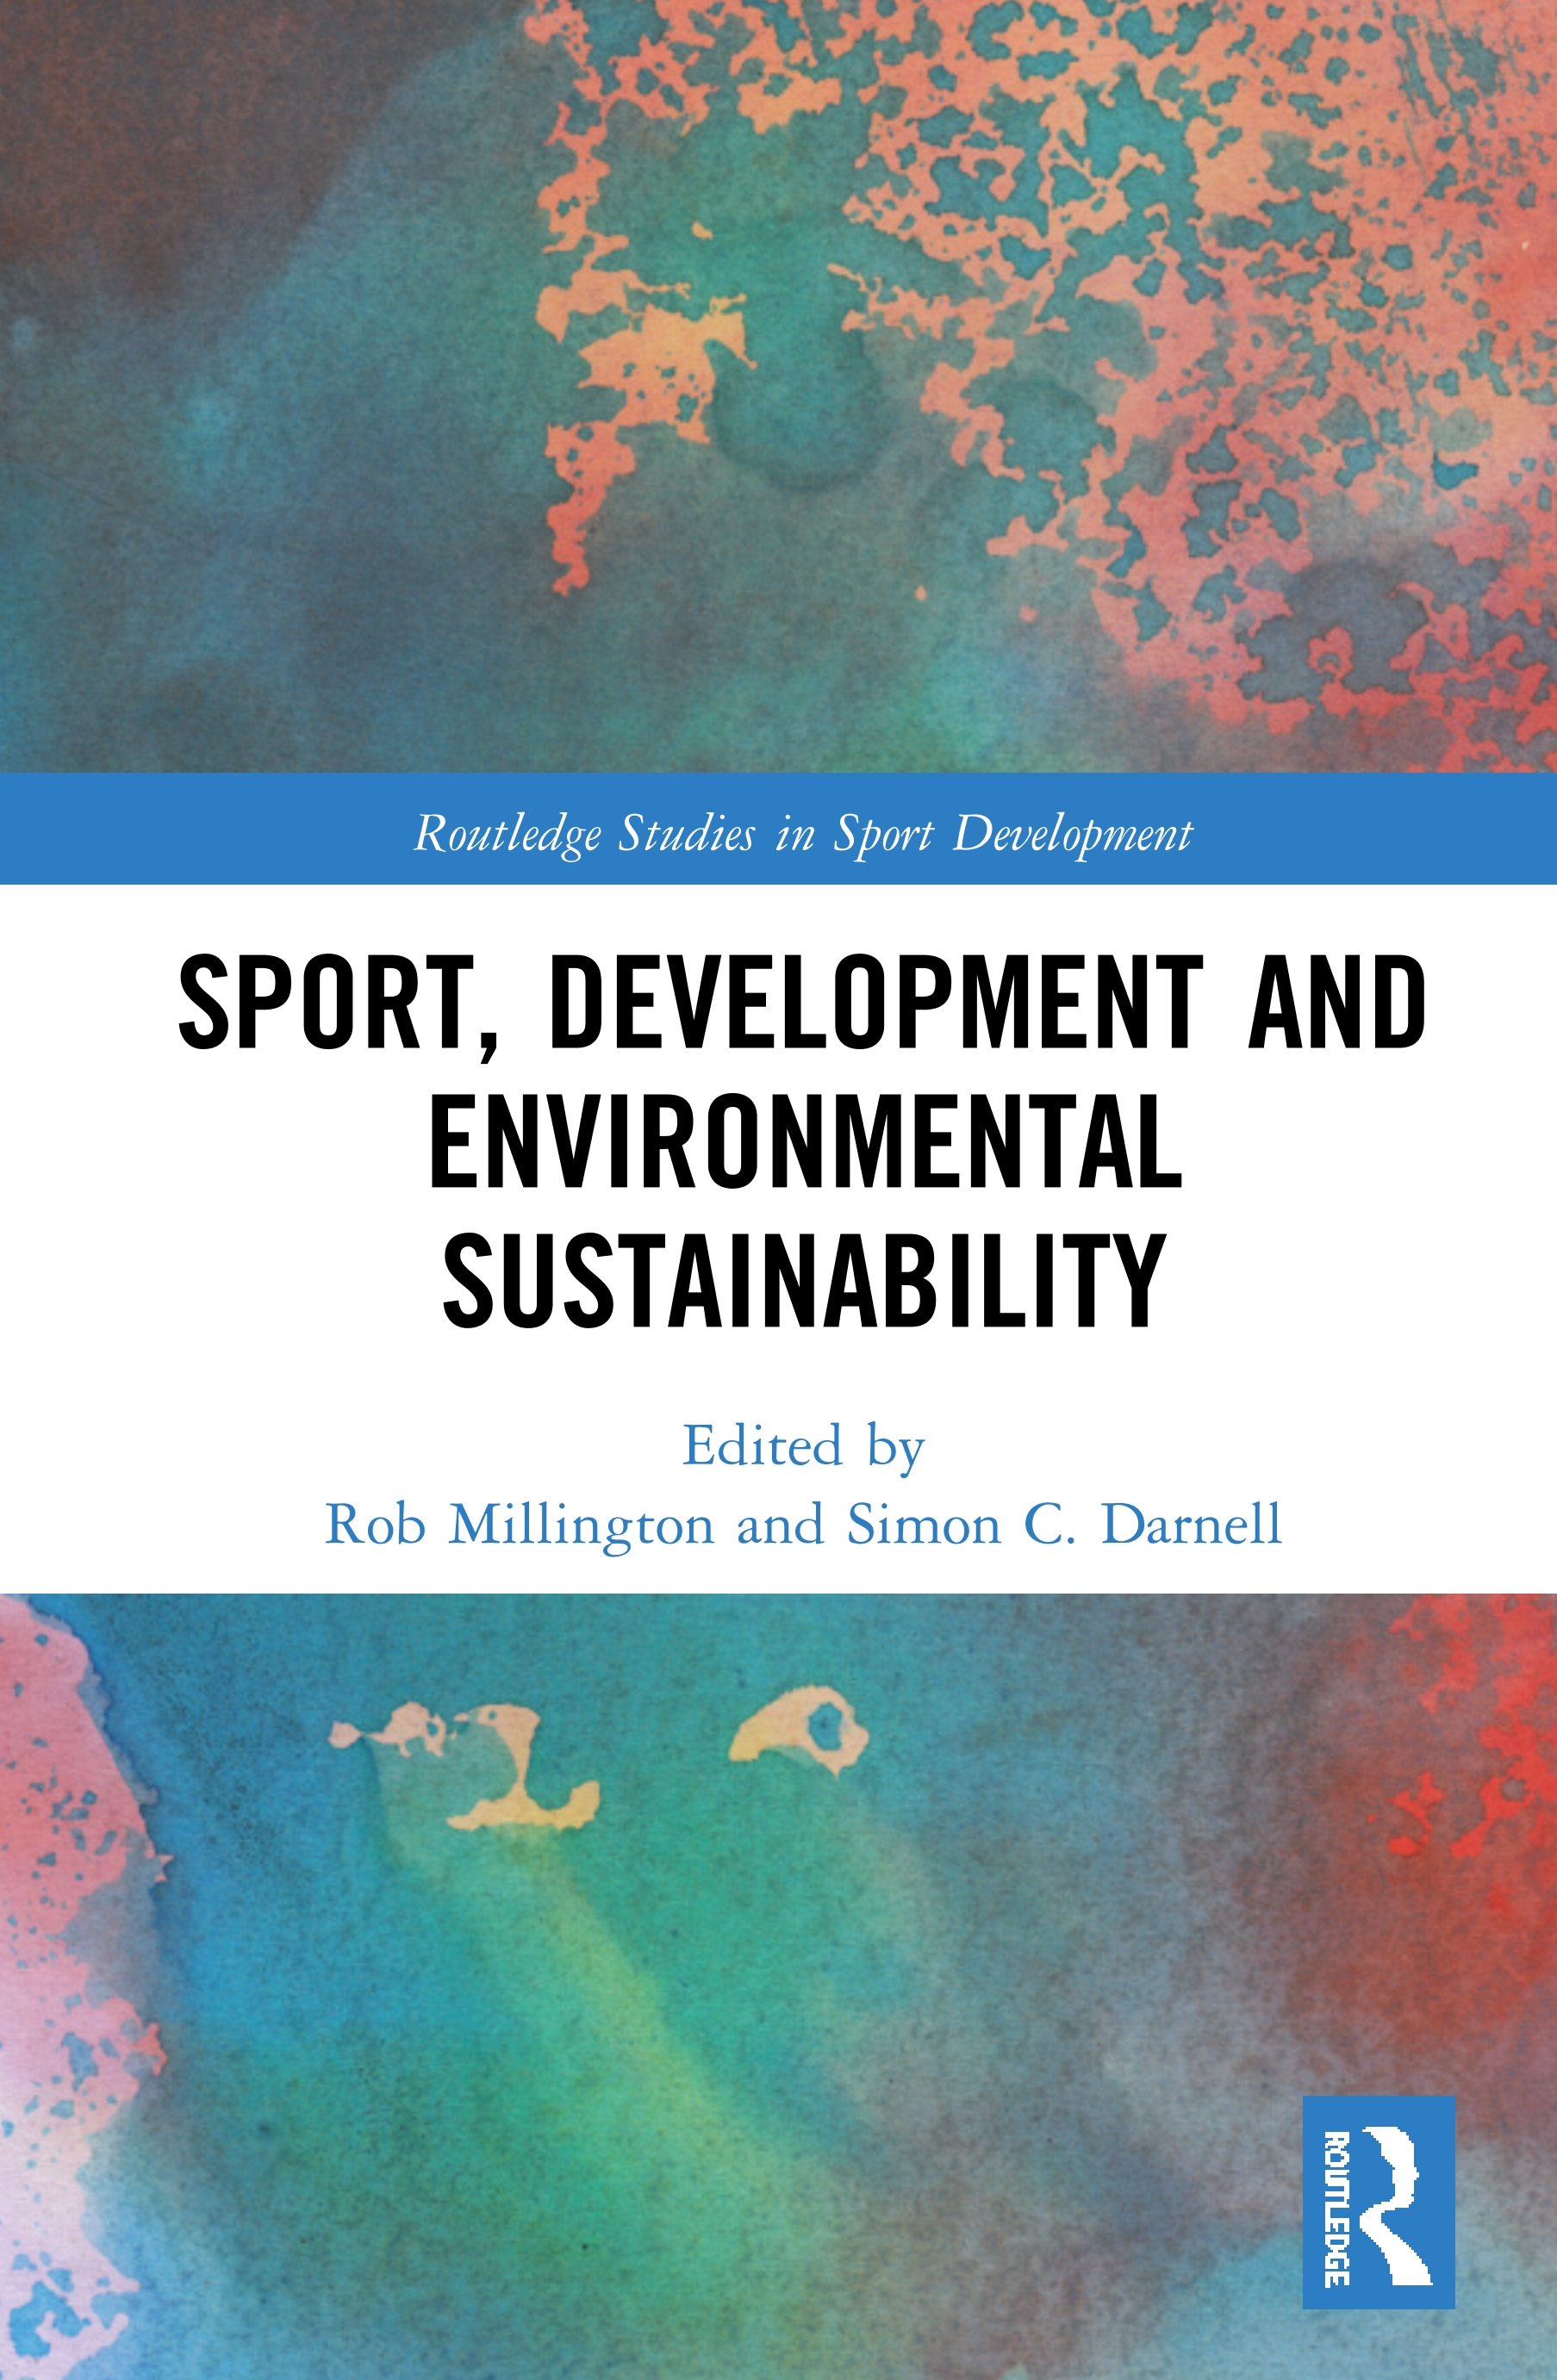 Sport, Development and Environmental Sustainability book cover